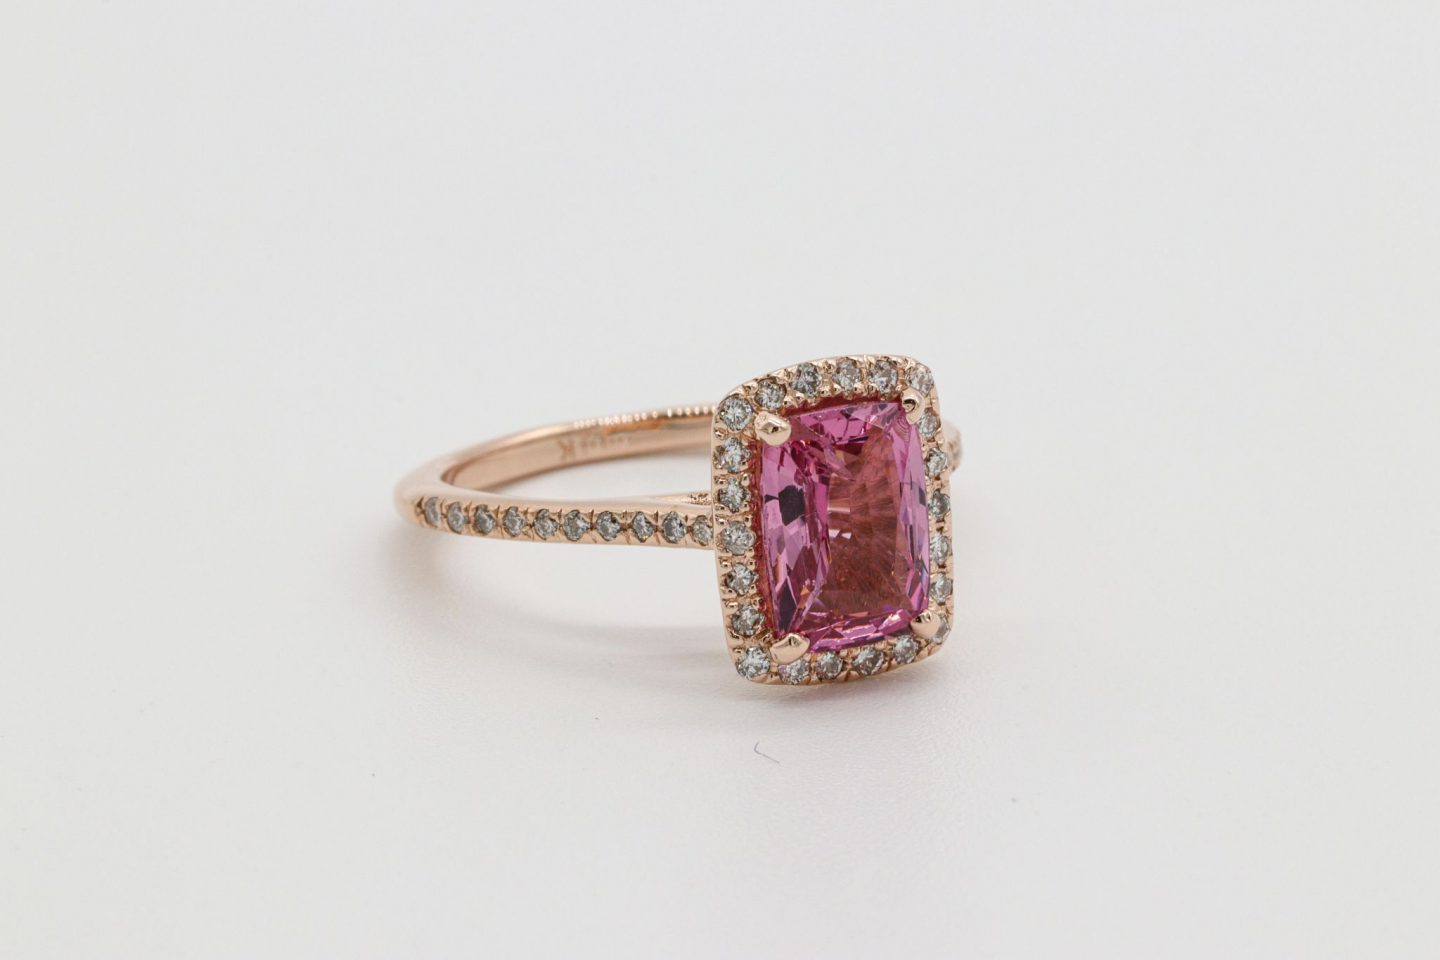 EVERYTHING YOU NEED TO KNOW ABOUT PINK SAPPHIRES